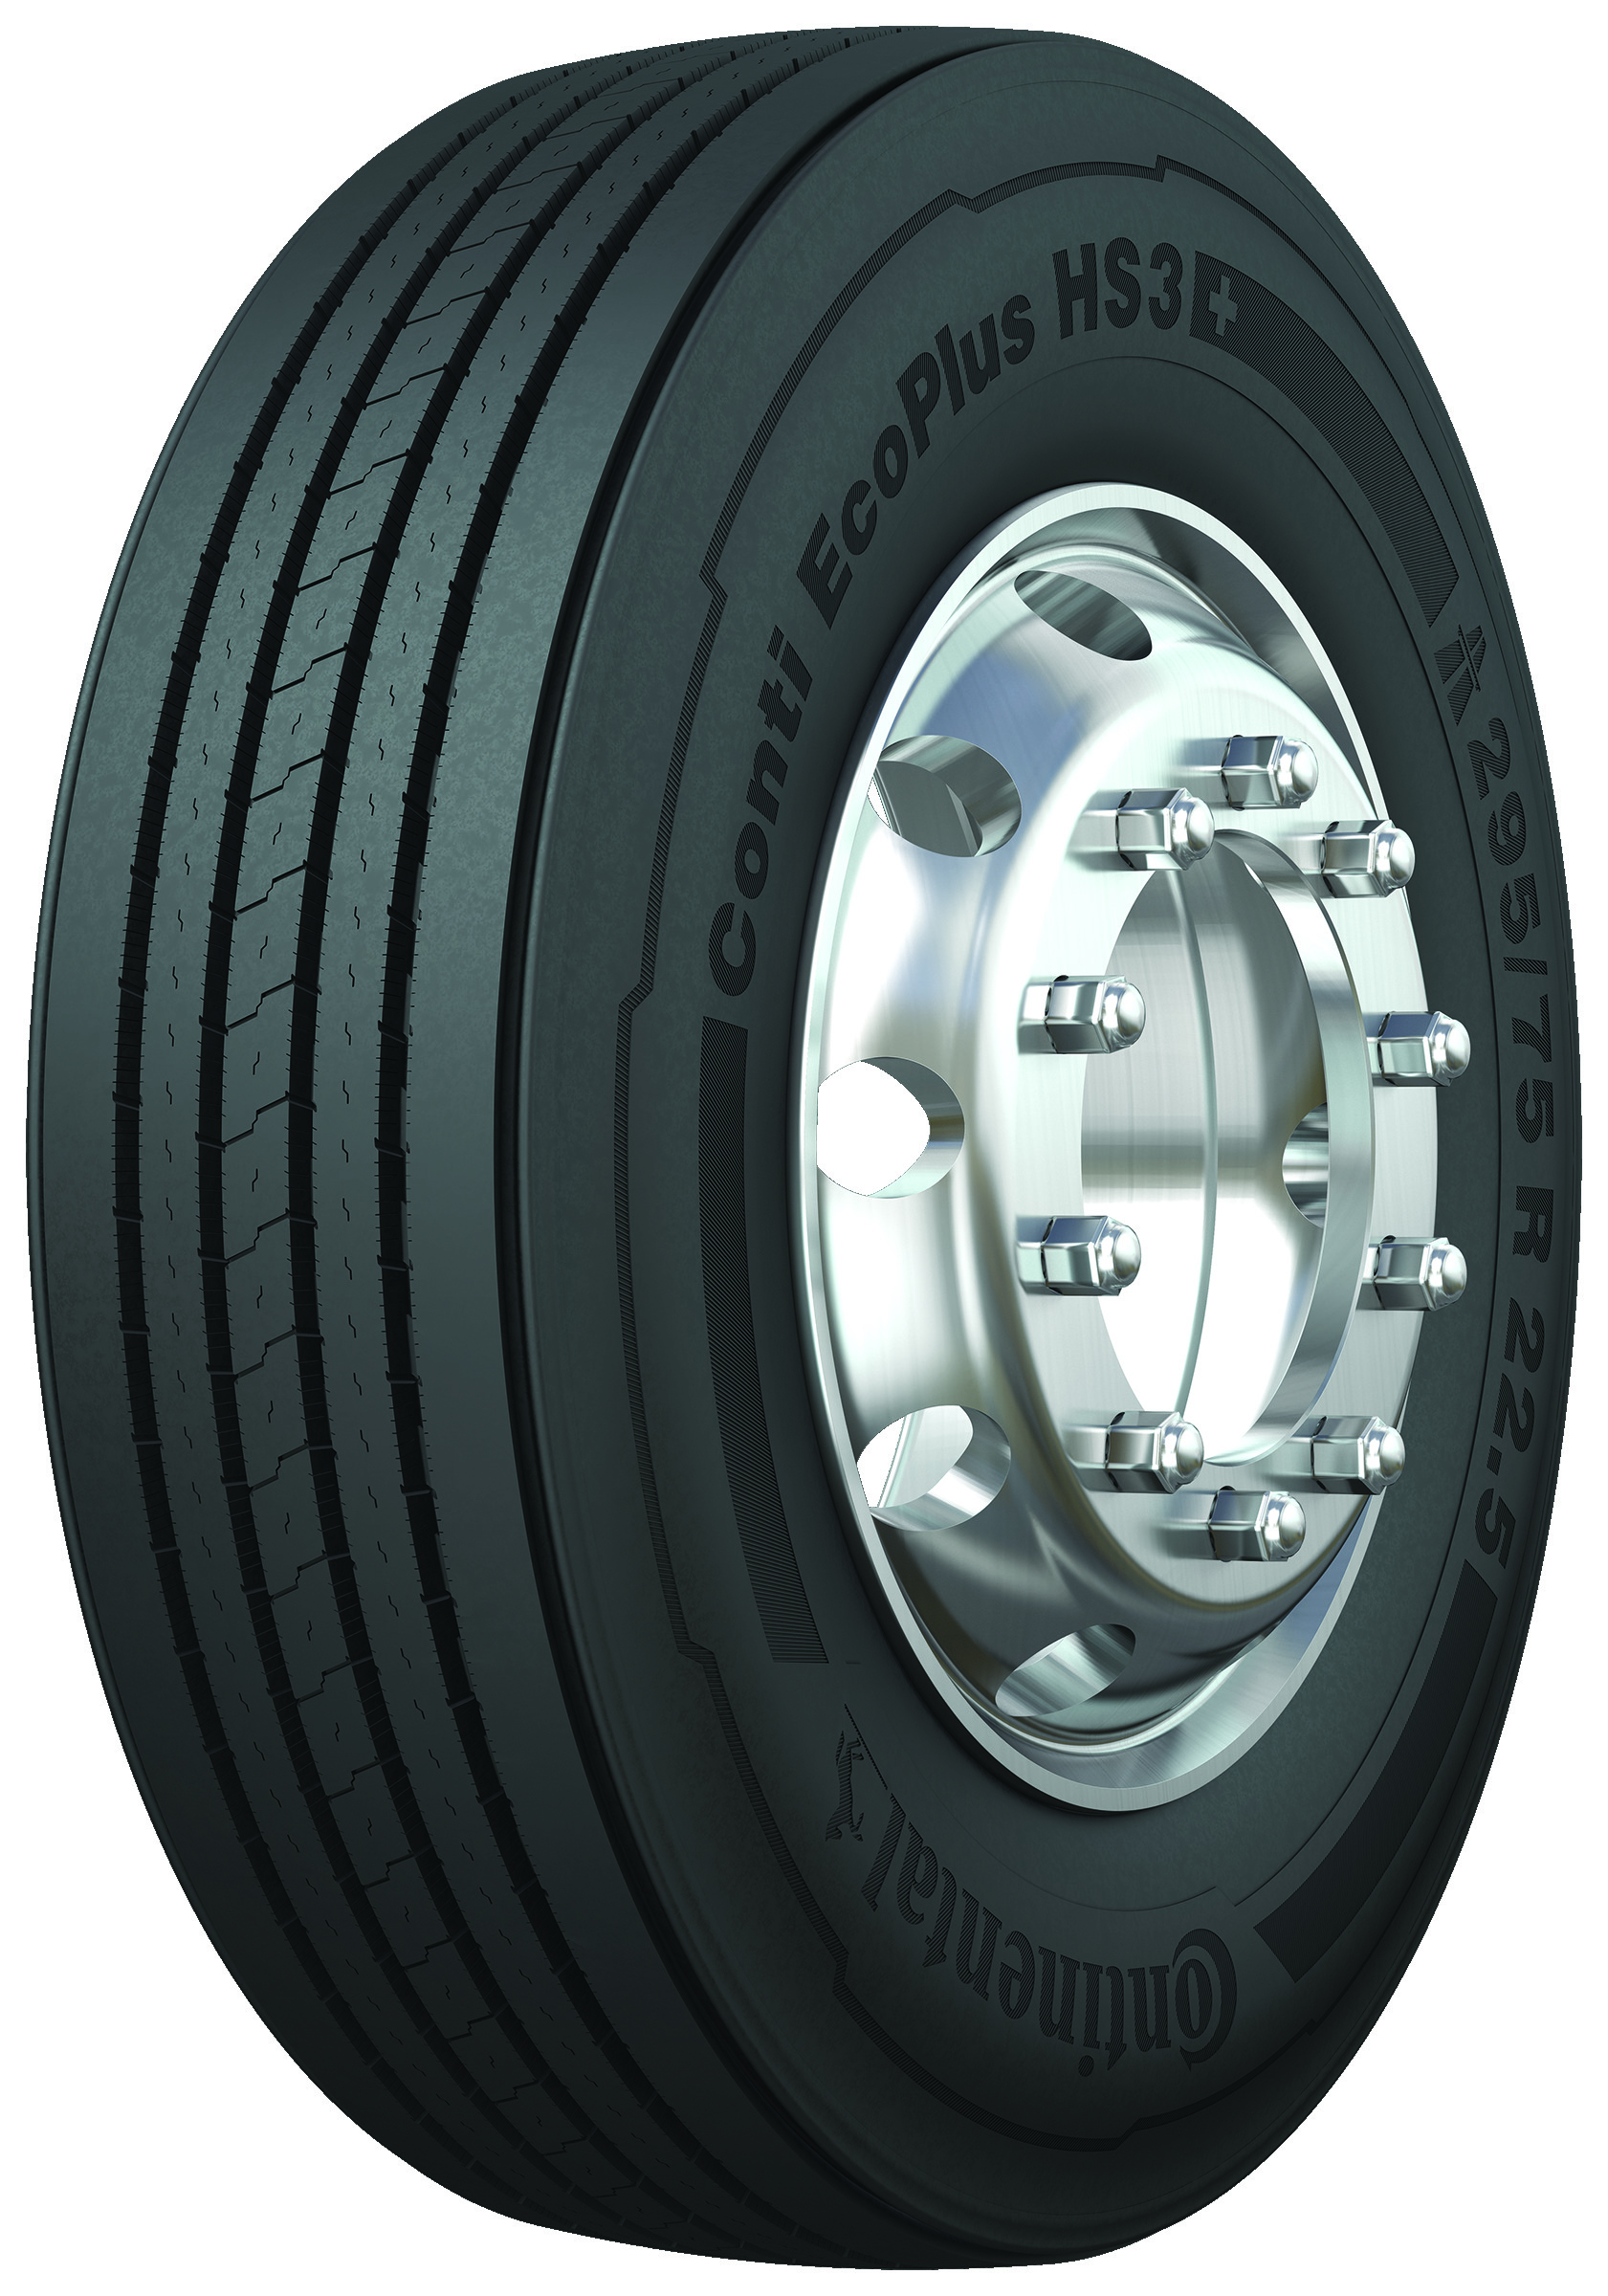 Conti EcoPlus HS3+ Truck Tire Extends Mileage